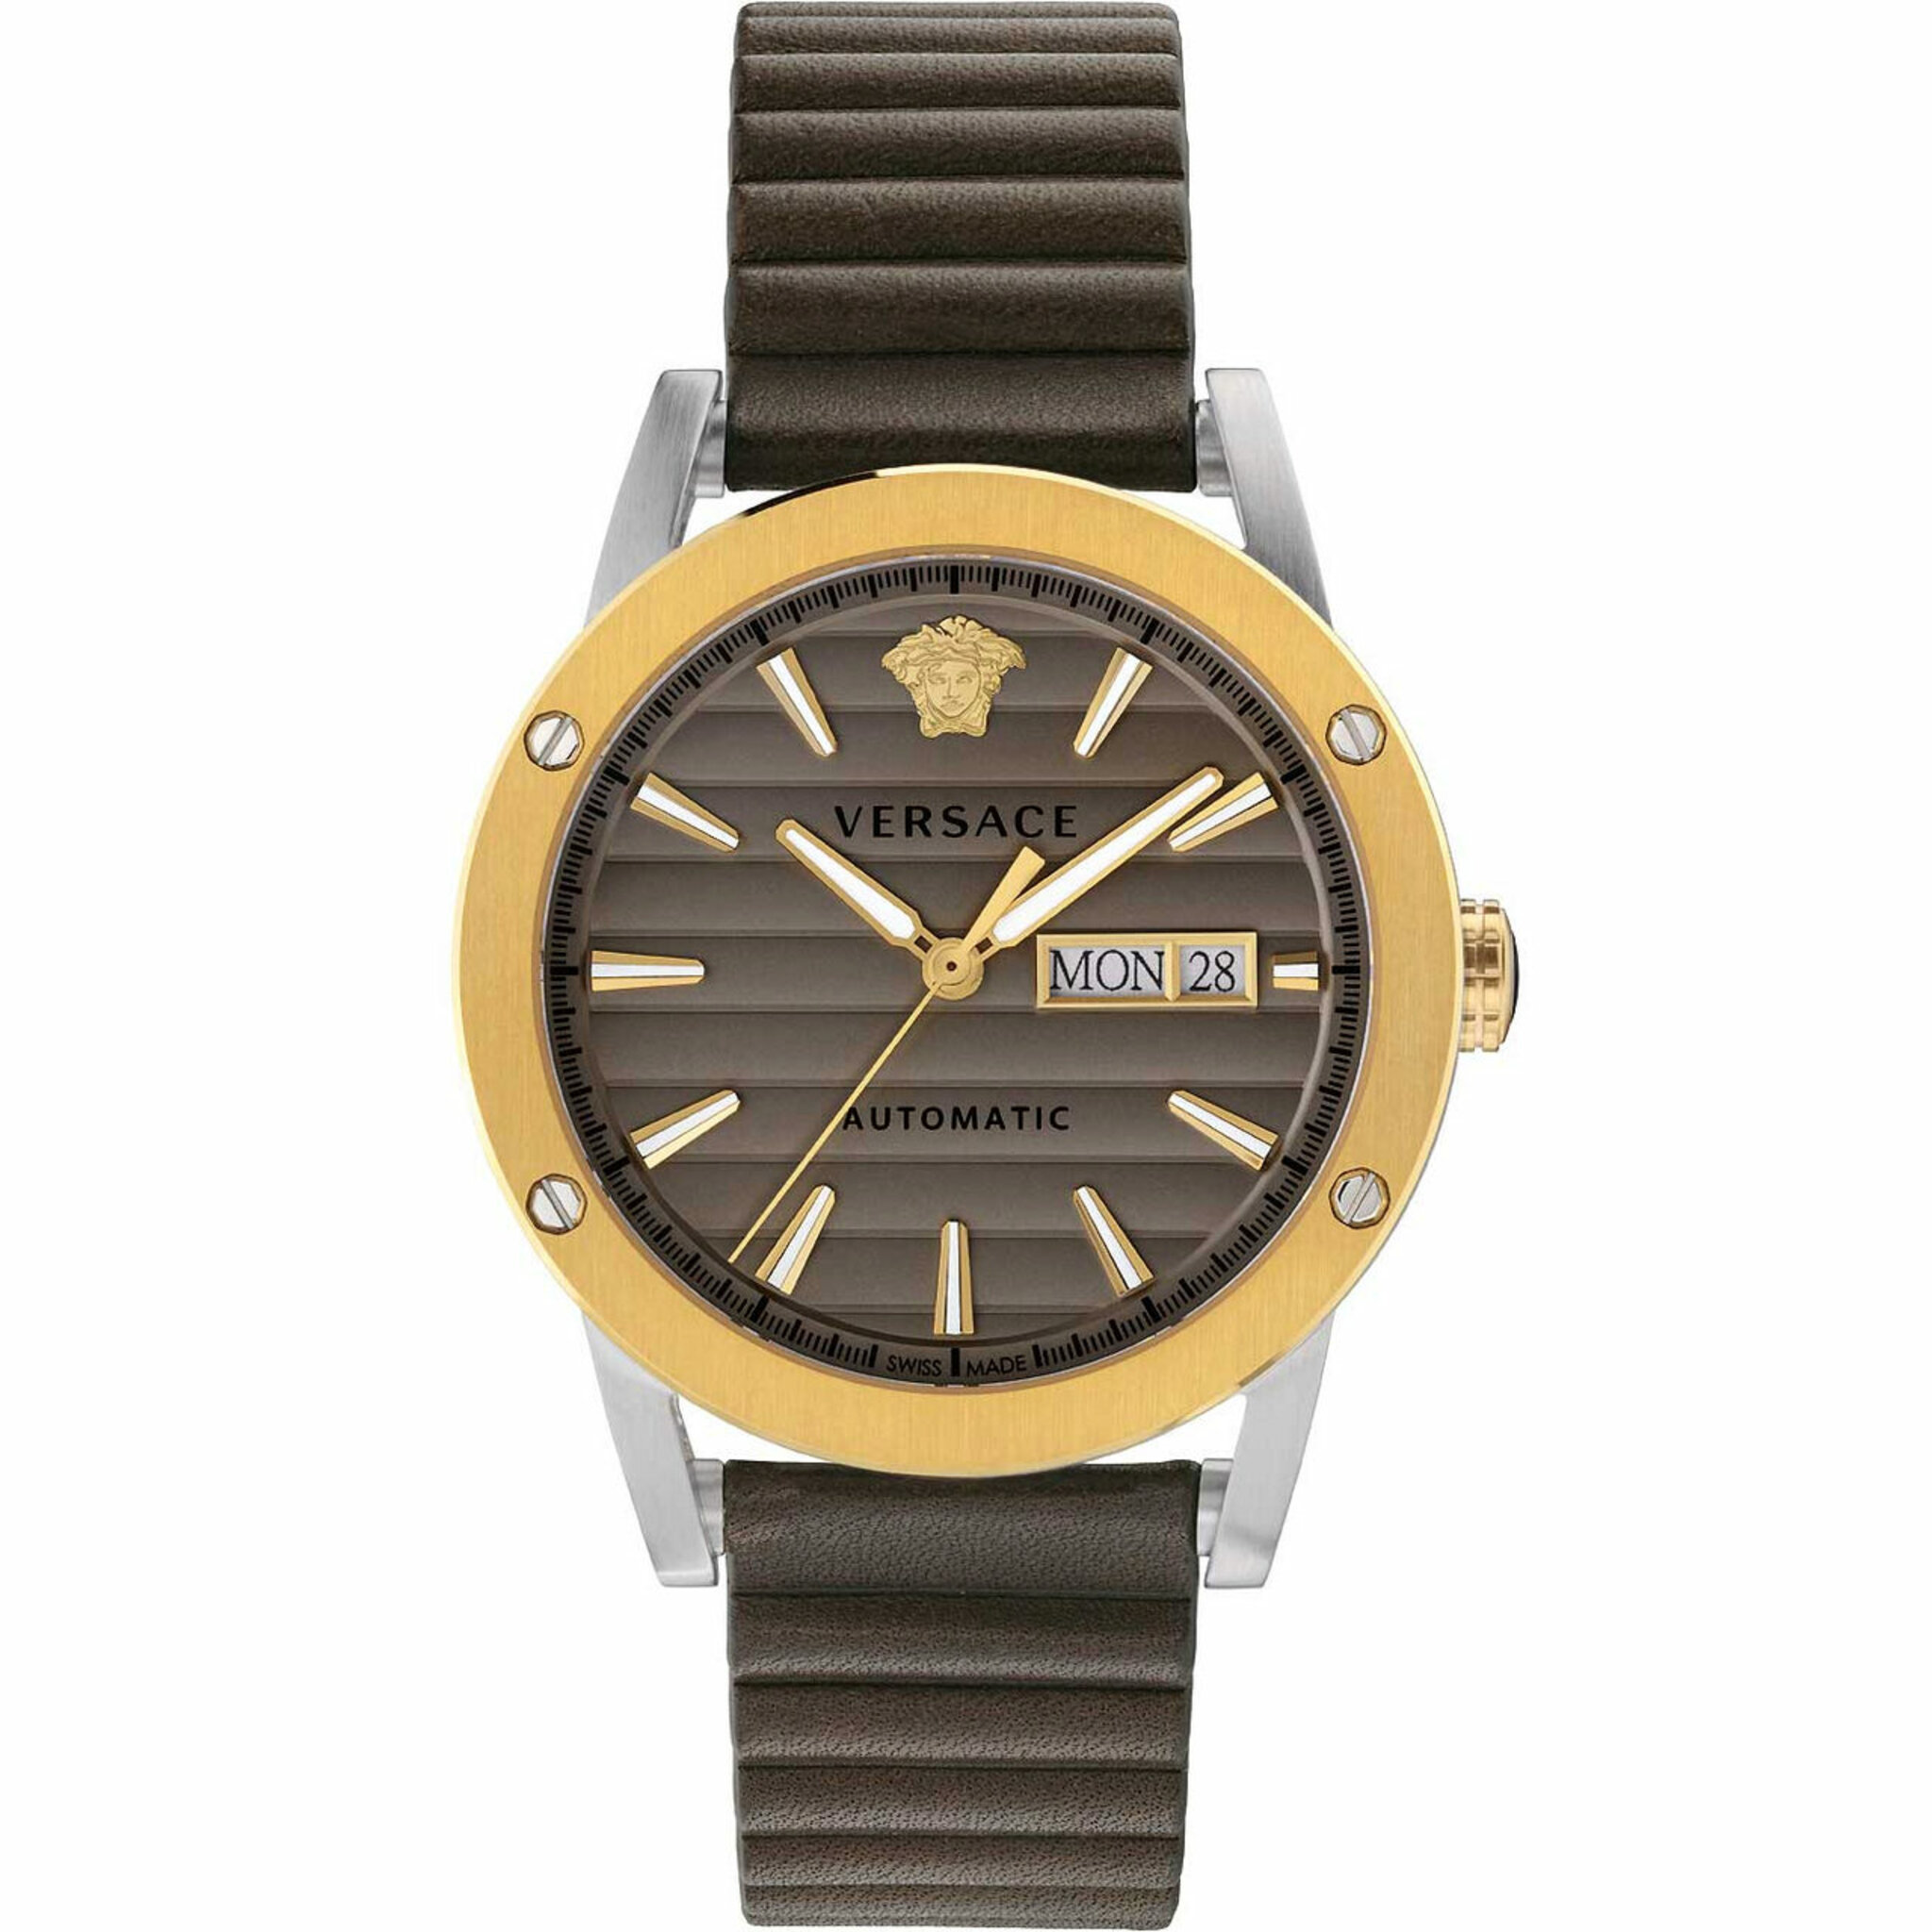 Vedx00219, Automatic, 42mm, 5atm